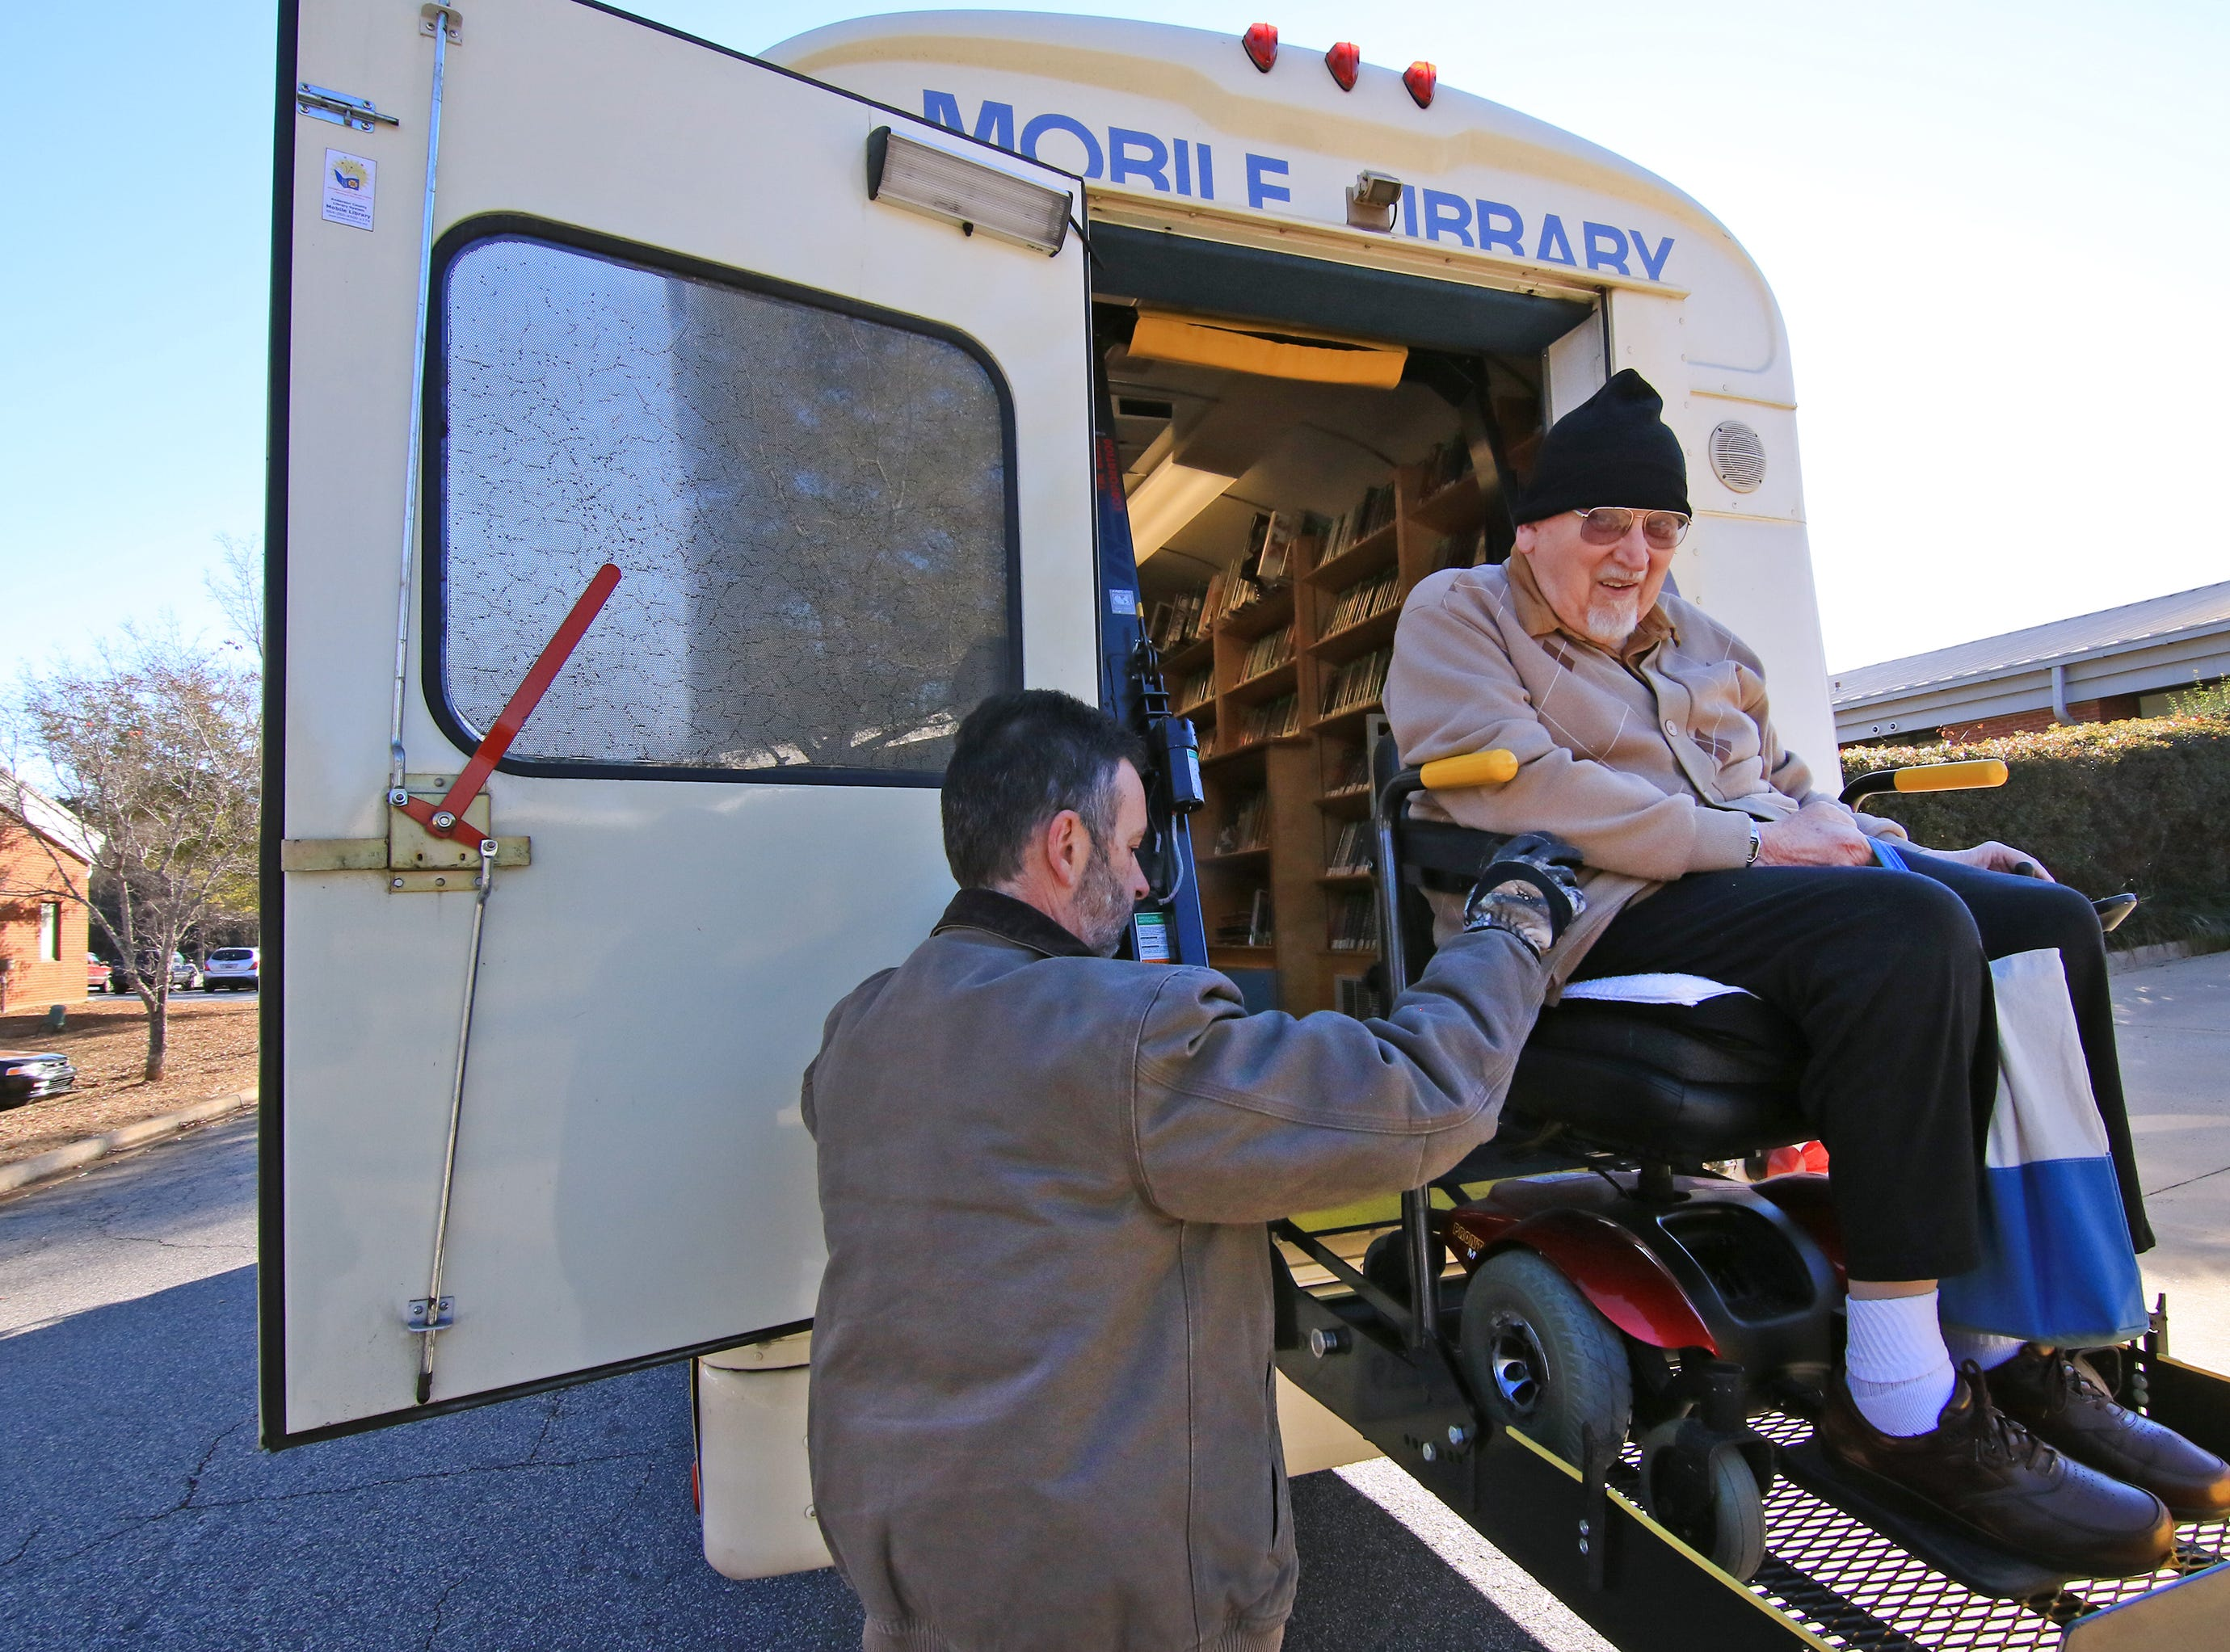 James Brissey, left, helps John Scott, U.S. Navy veteran, out of the Anderson County Library Bookmobile, at the Richard M. Campbell Veterans Nursing Home in Anderson. Scott looks forward to seeing the mobile library which brings books he is interested in 2015.